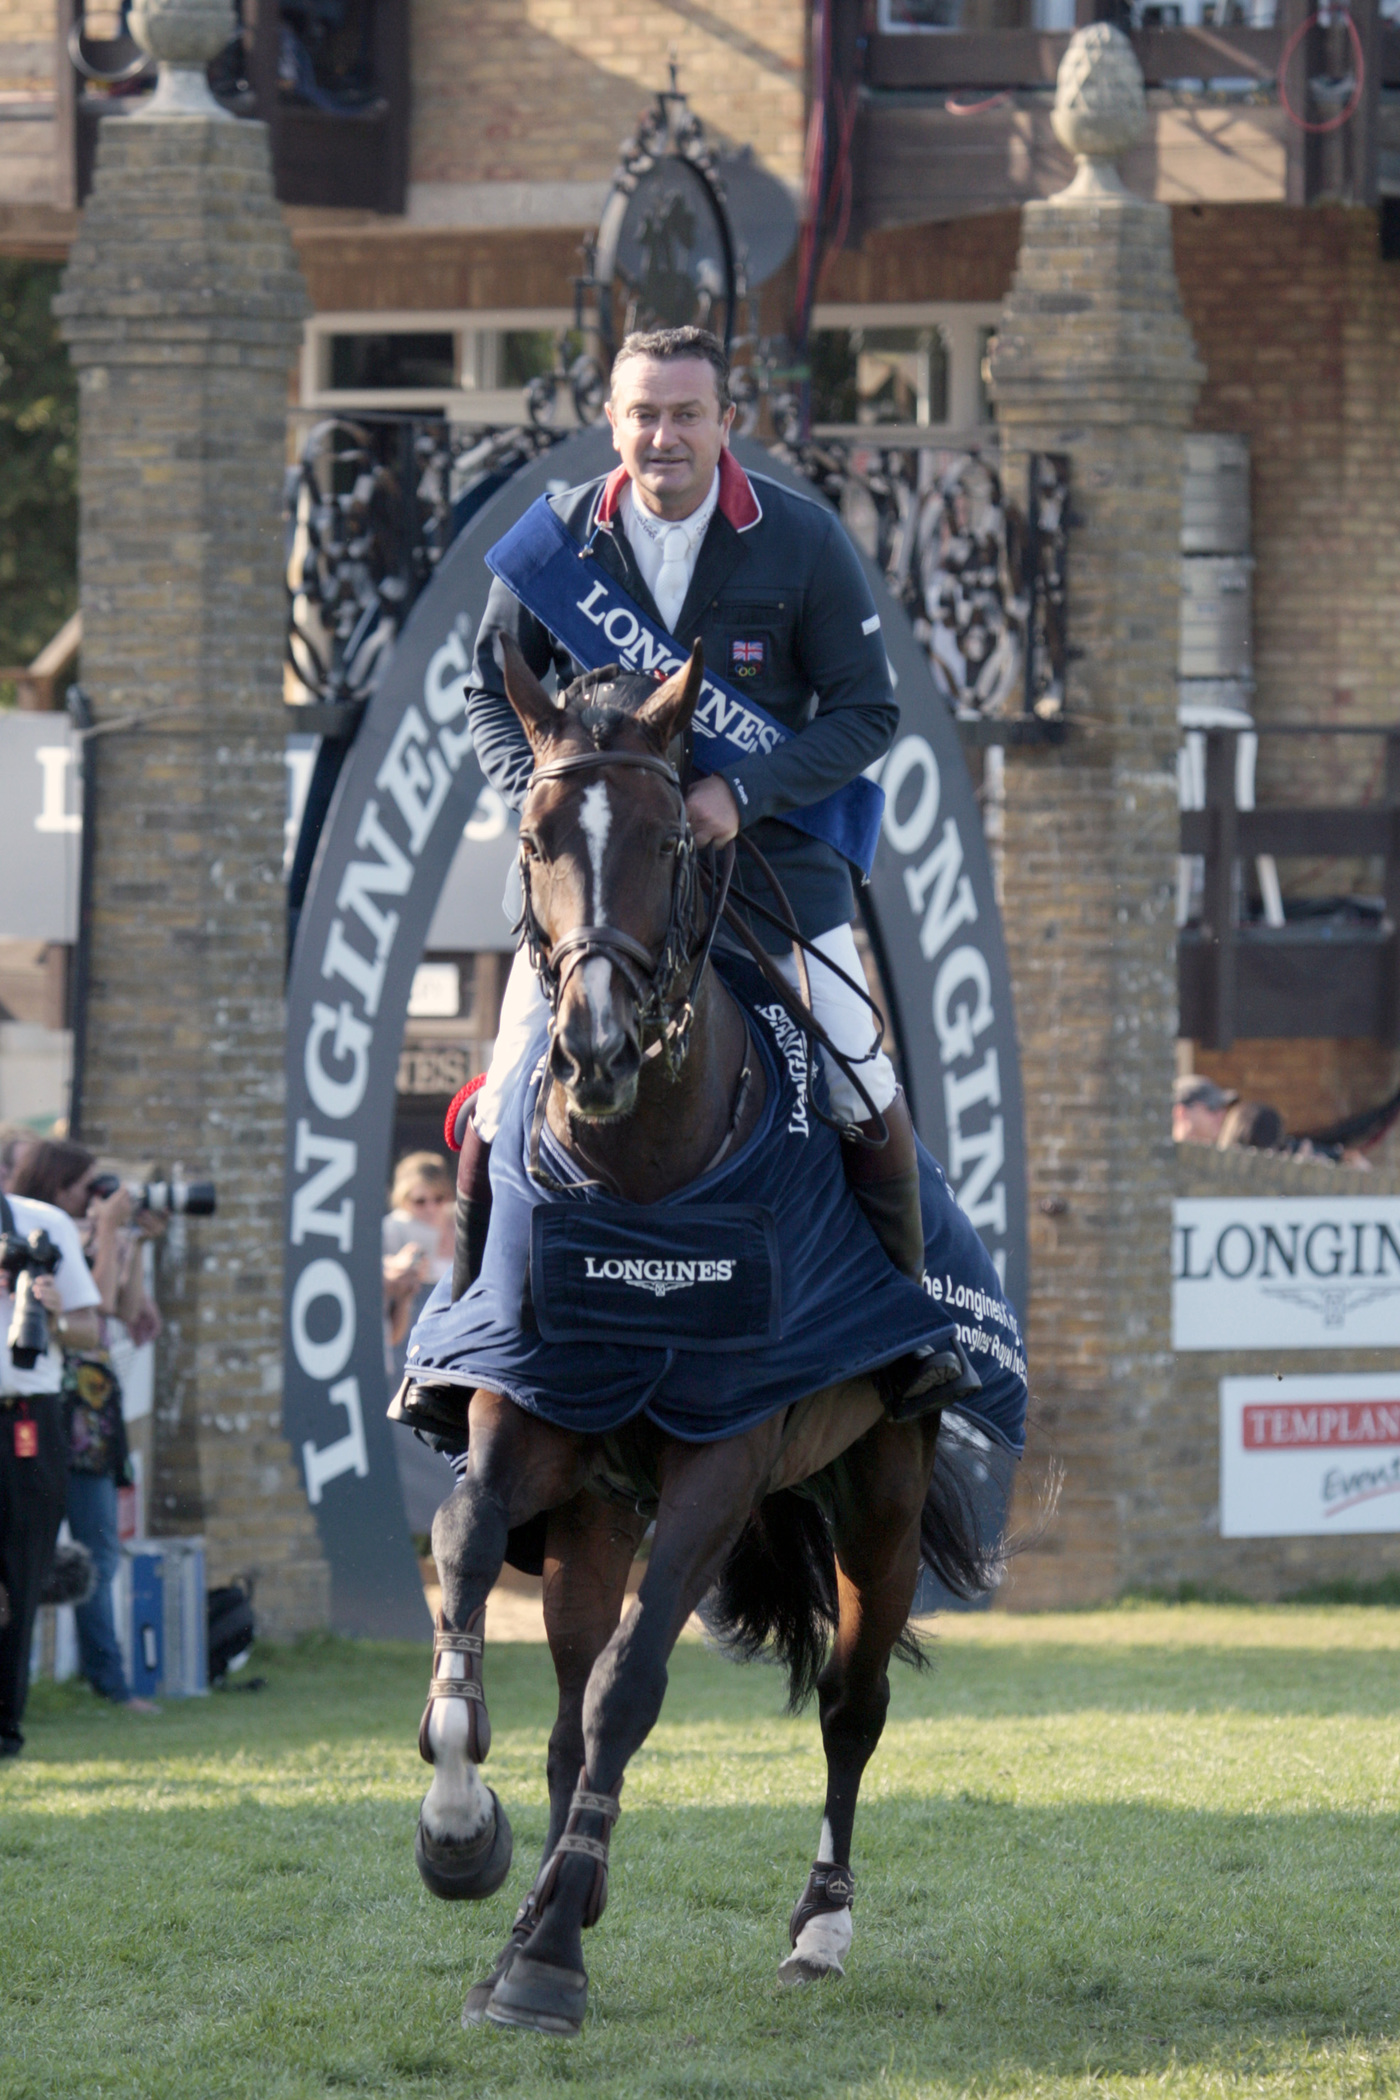 Longines Show Jumping Event: The Longines Royal International Horse Show in Hickstead 2